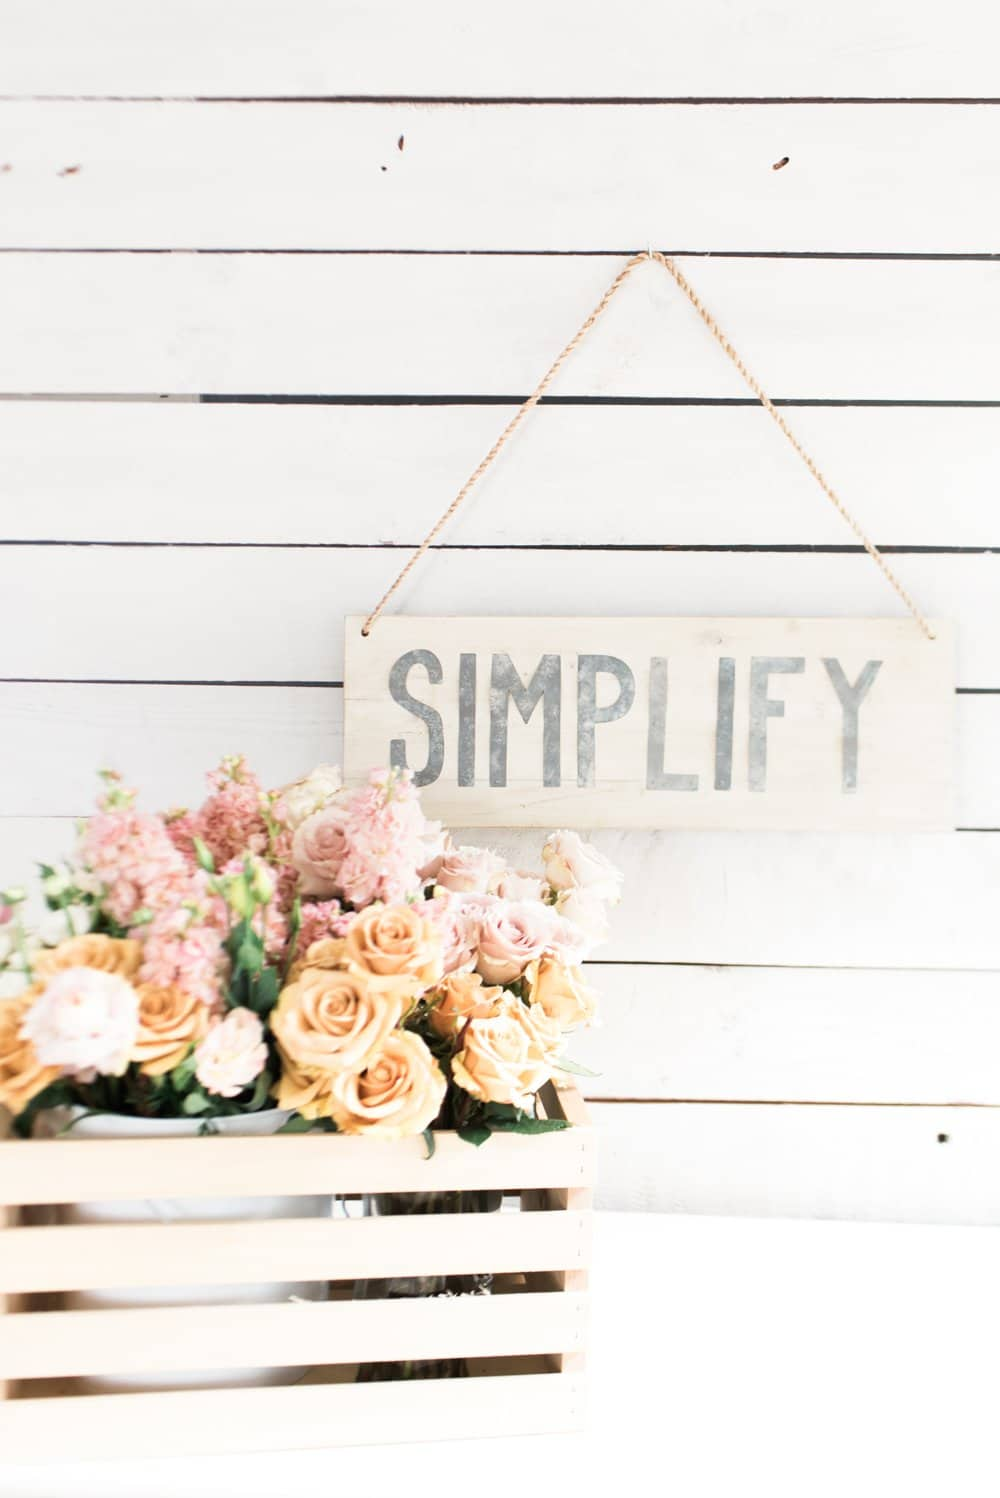 When I start to feel that whirlwind of crazy come over me, I know it's time to slow my roll and simplify my life. These 5 simply ways to simplify life save me every single time.